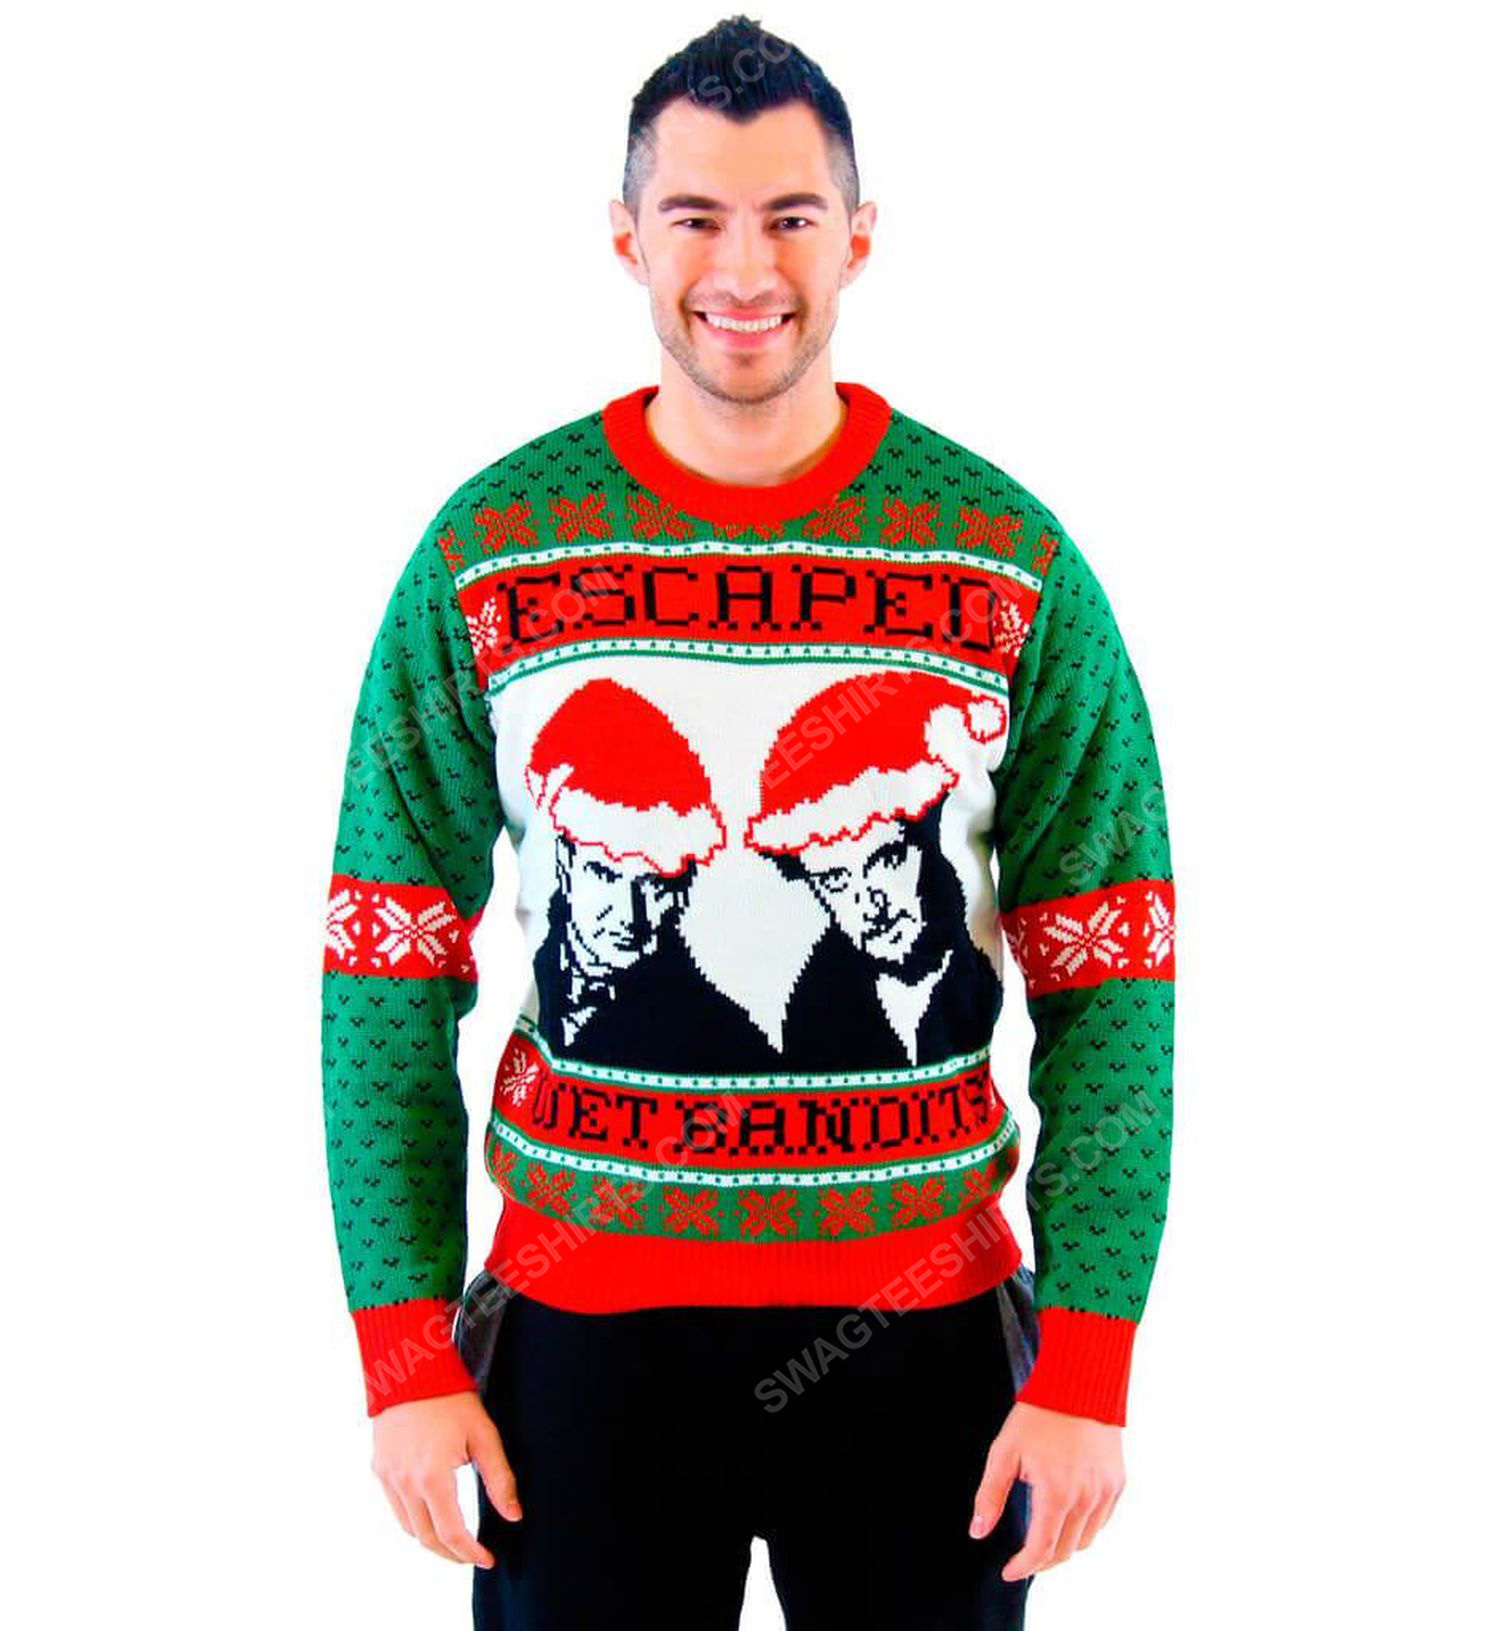 Home alone wet bandits full print ugly christmas sweater 2 - Copy